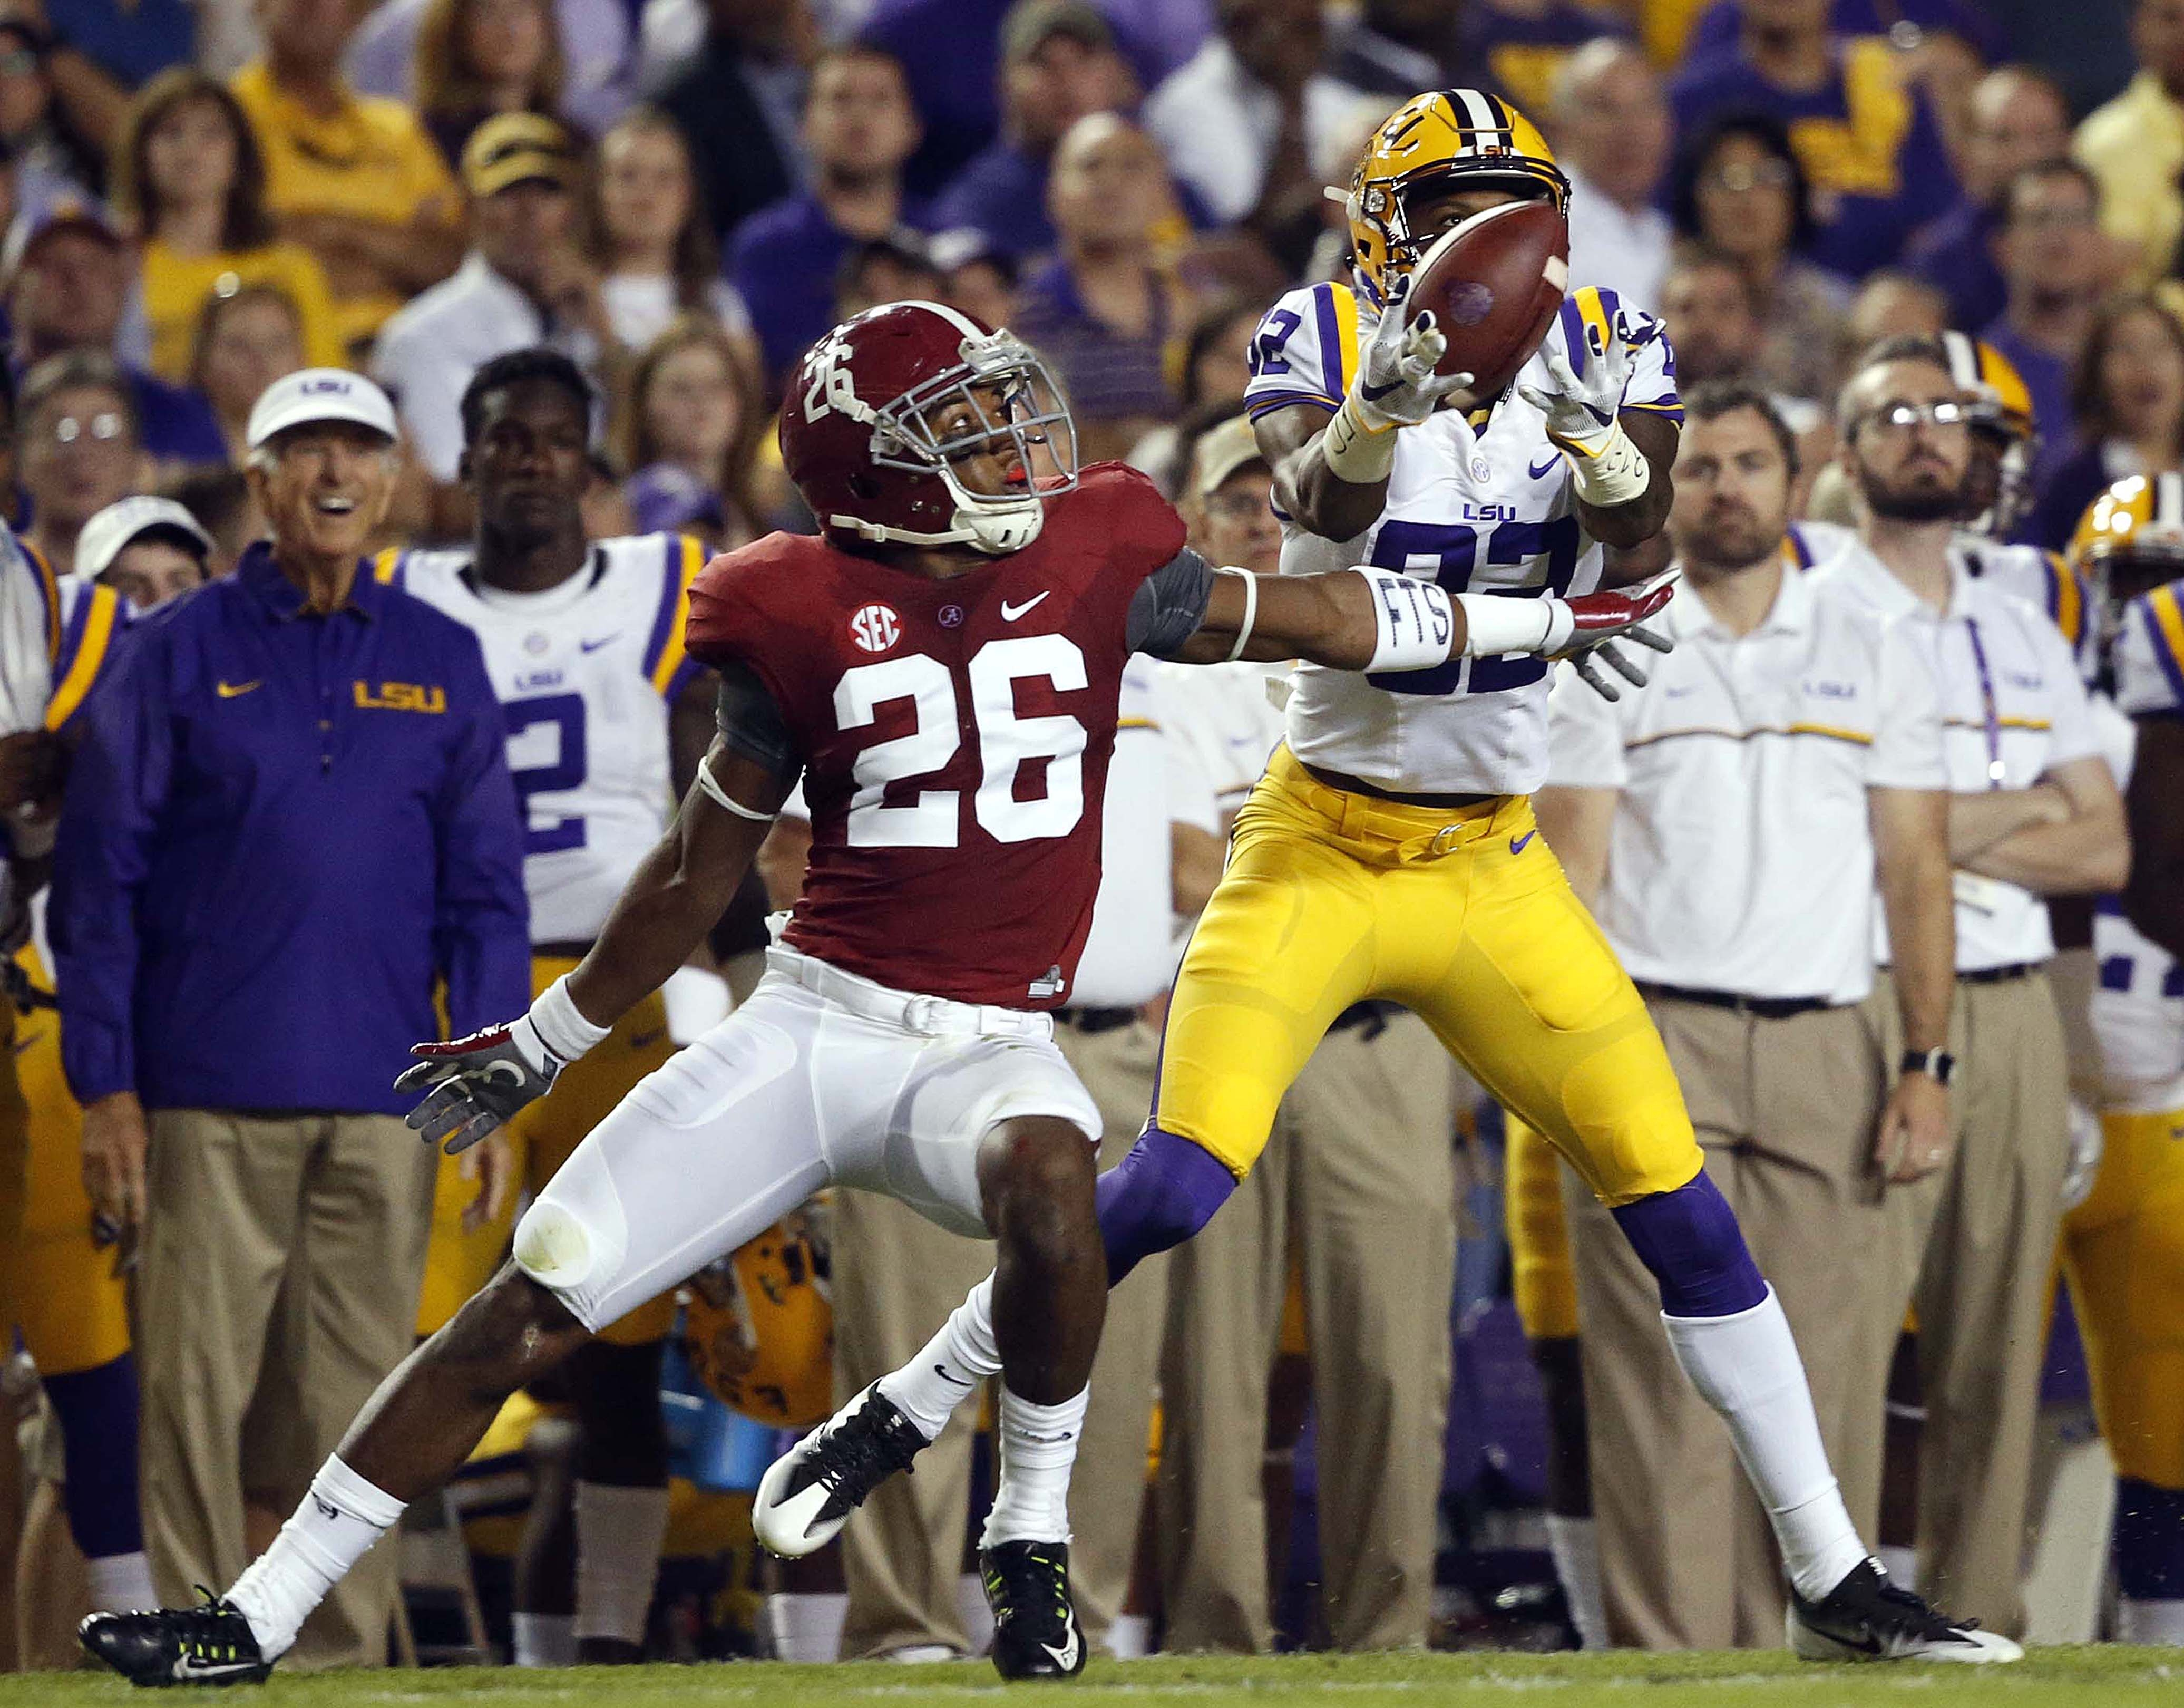 LSU wide receiver D.J. Chark (82) pulls in a long pass reception in front of Alabama defensive back Marlon Humphrey (26) in the first half of an NCAA college football game in Baton Rouge, La., Saturday, Nov. 5, 2016. (AP Photo/Gerald Herbert)